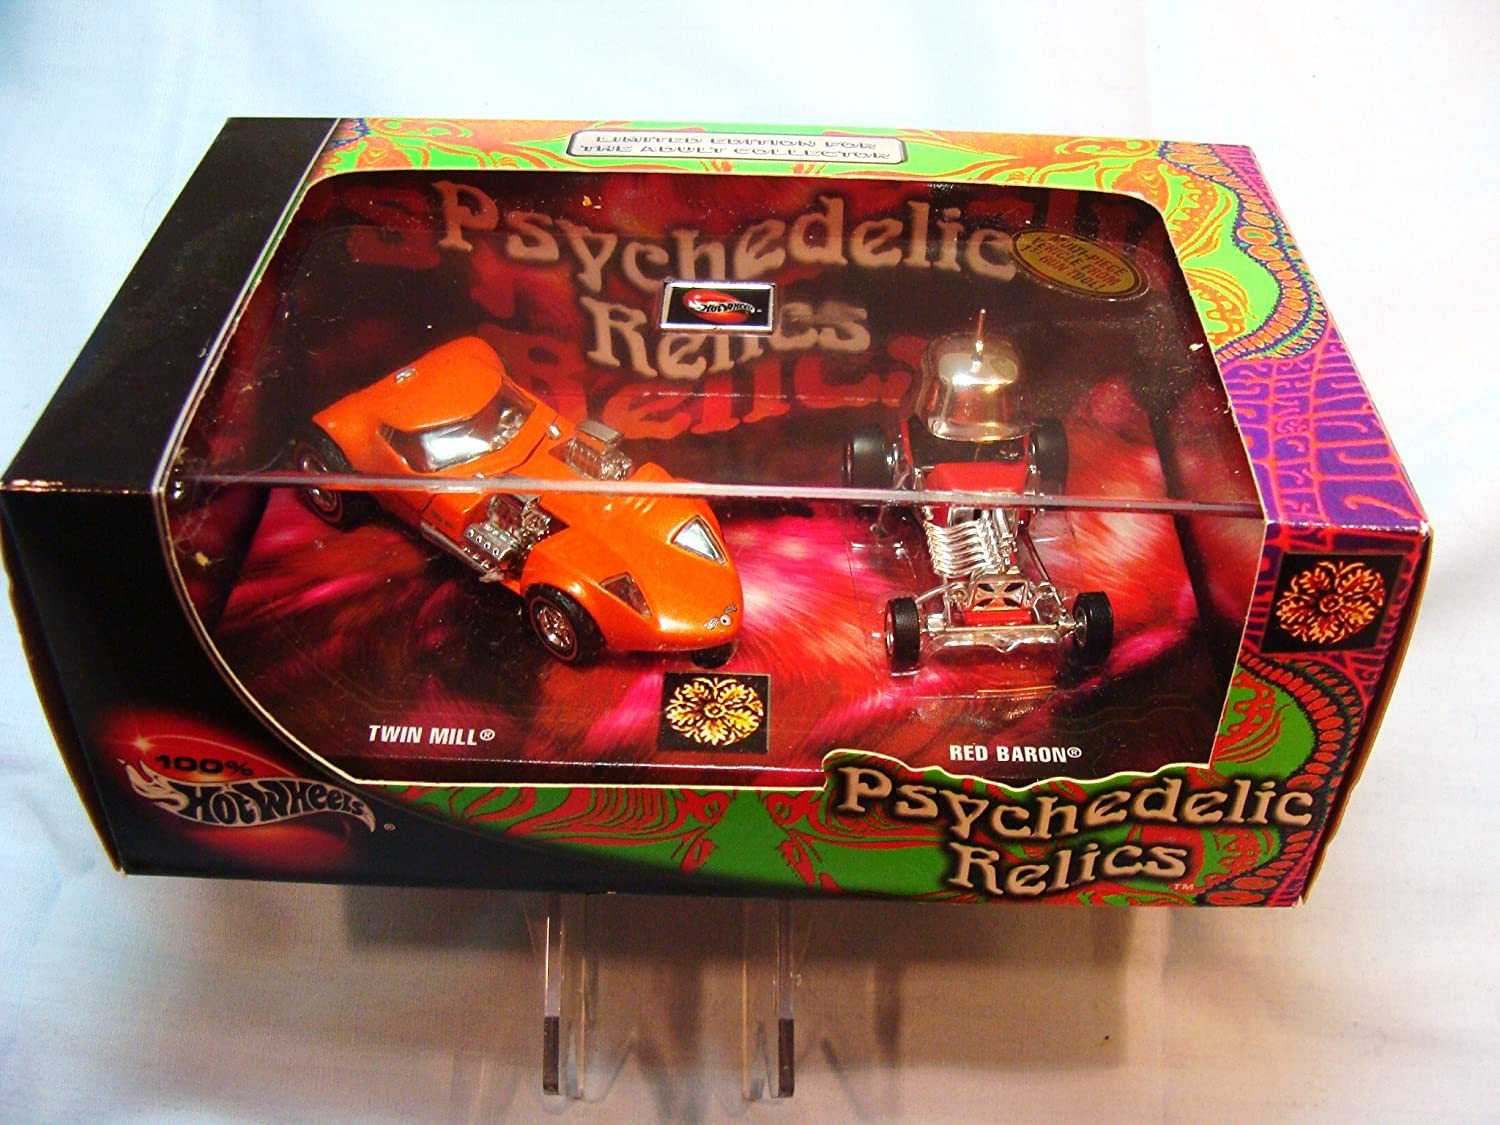 2002 Hot Wheels 2 Car Box Set Psychedelic Relics with the Twin Mill and the ROT Baron by Hot Wheels